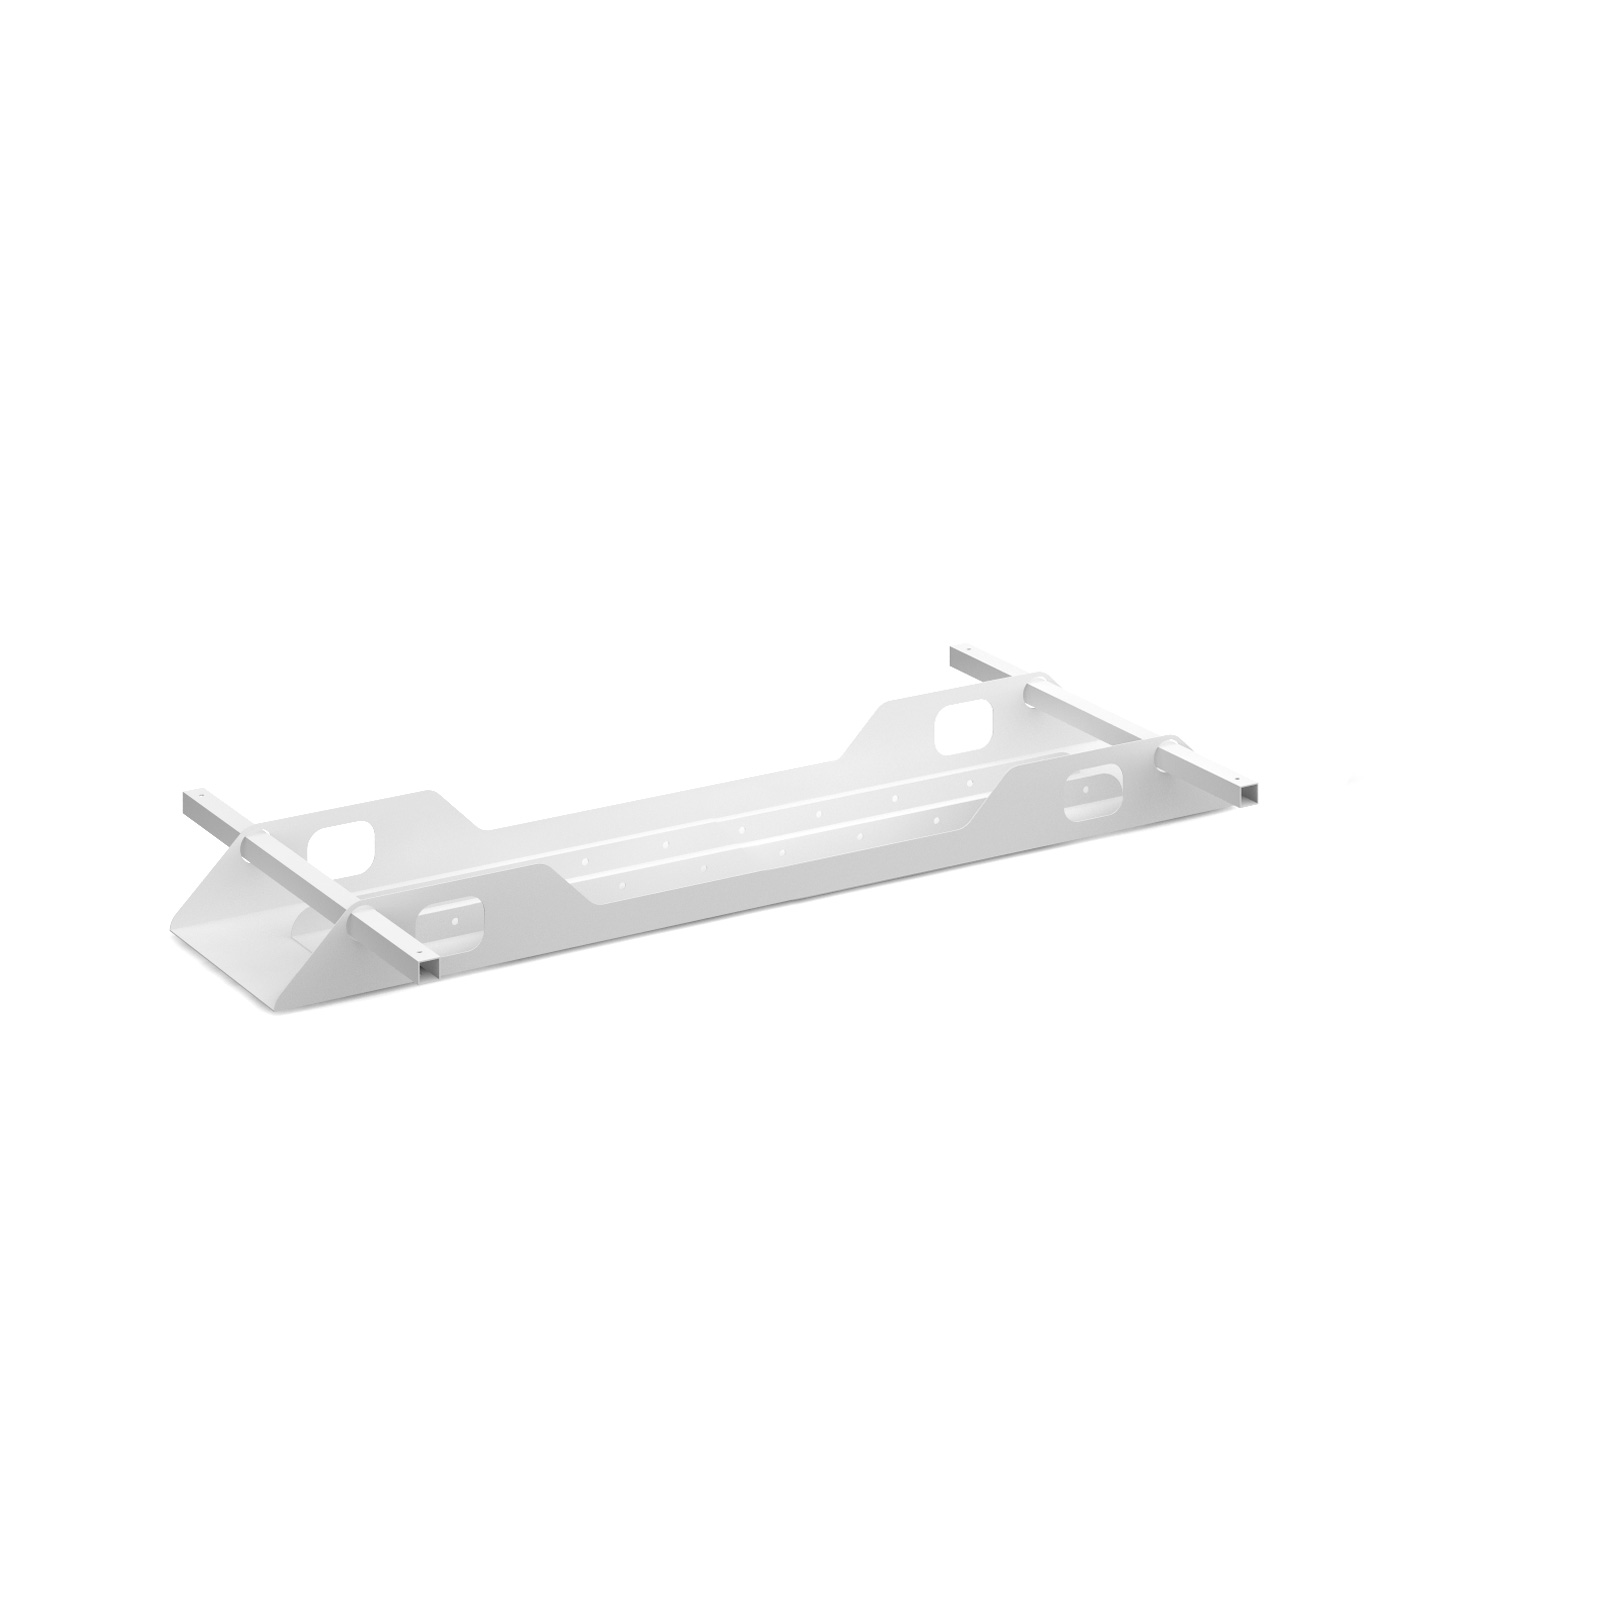 Connex Double Cable Tray 1400mm in white